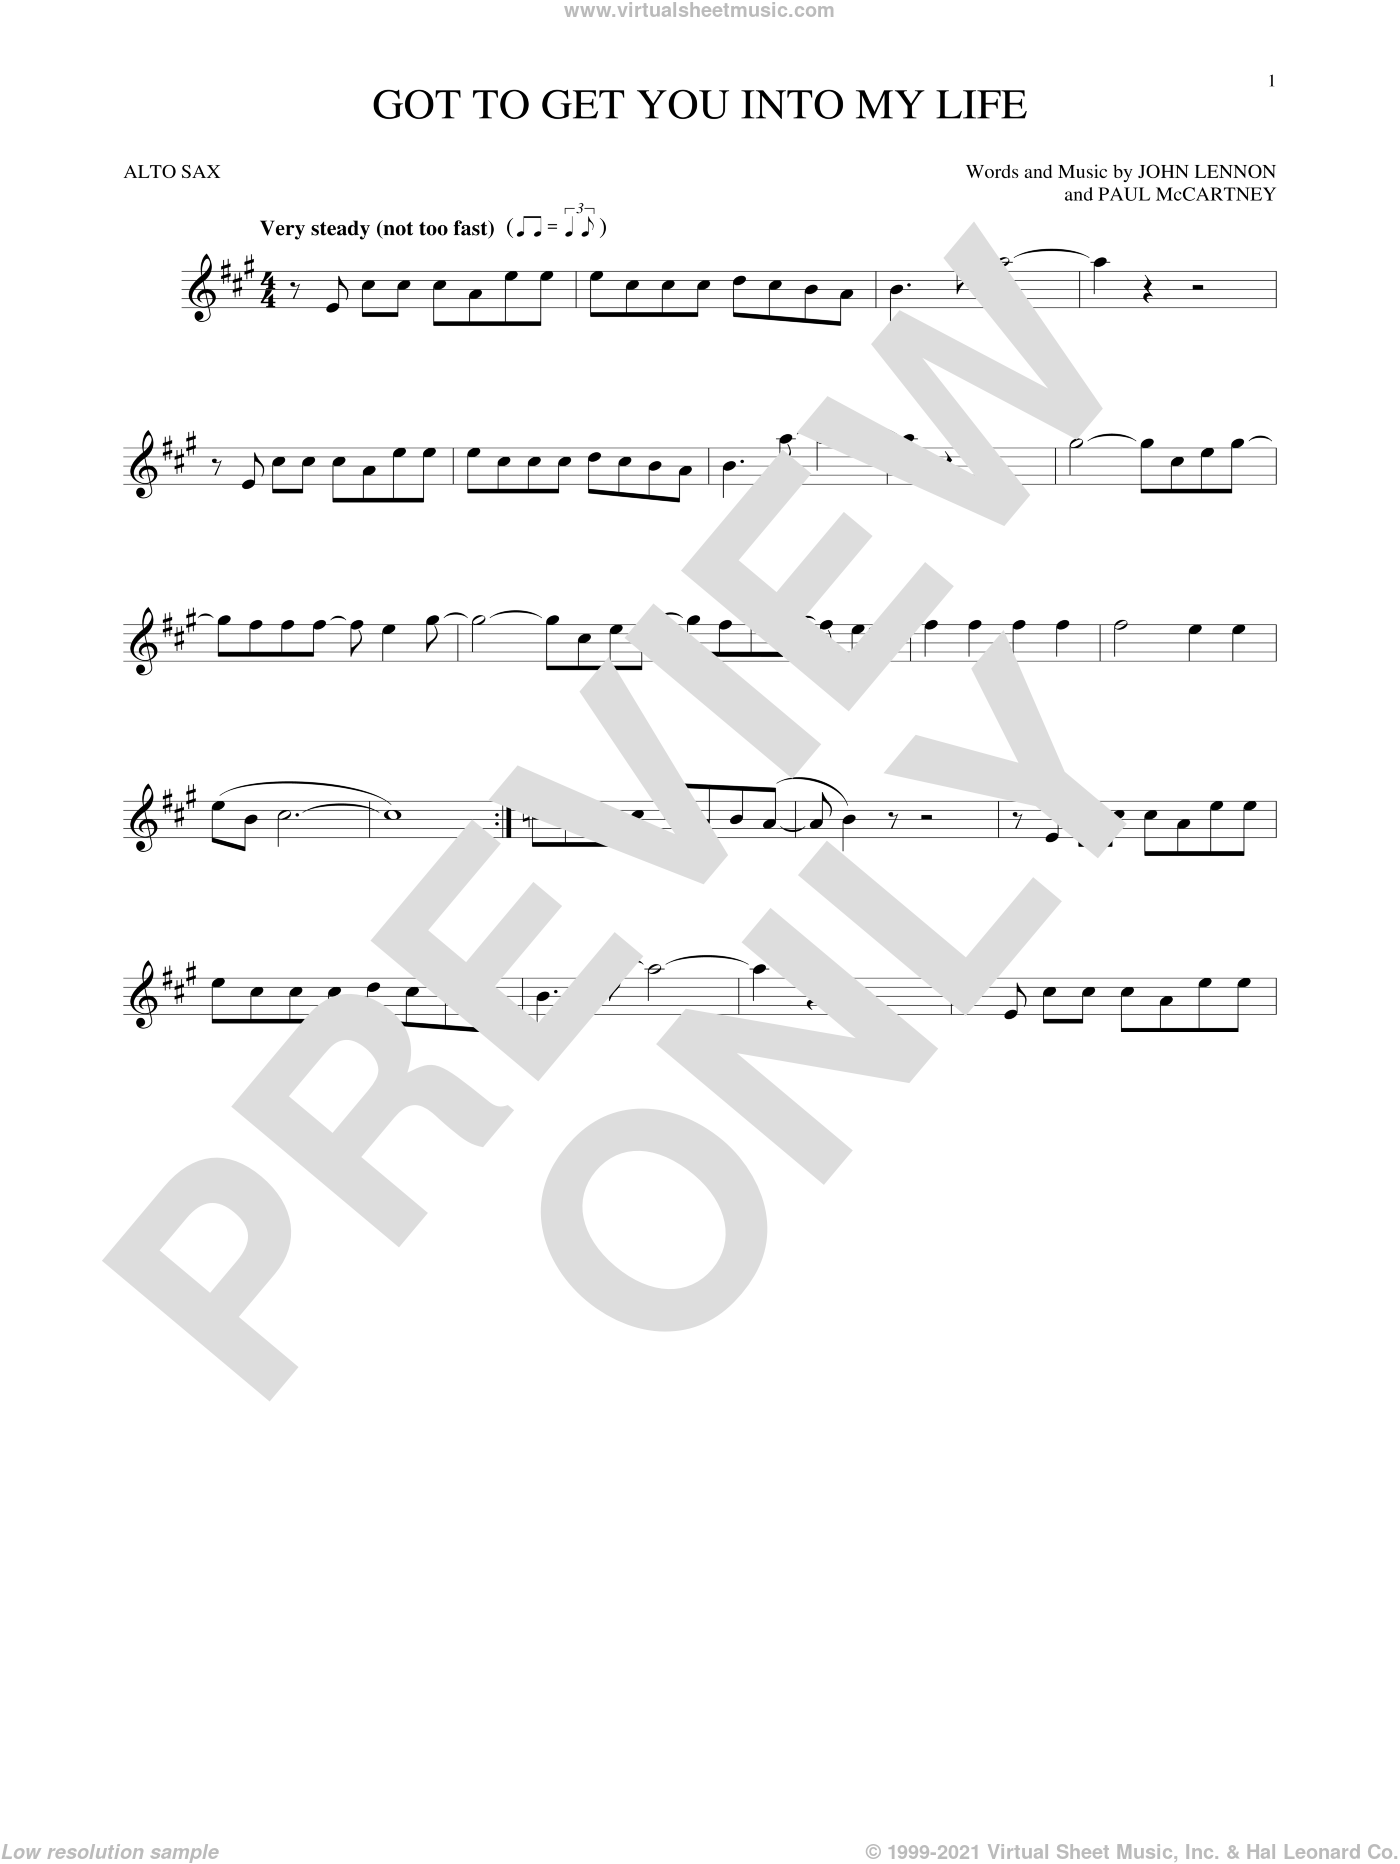 Got To Get You Into My Life sheet music for alto saxophone solo by The Beatles, John Lennon and Paul McCartney, intermediate alto saxophone. Score Image Preview.